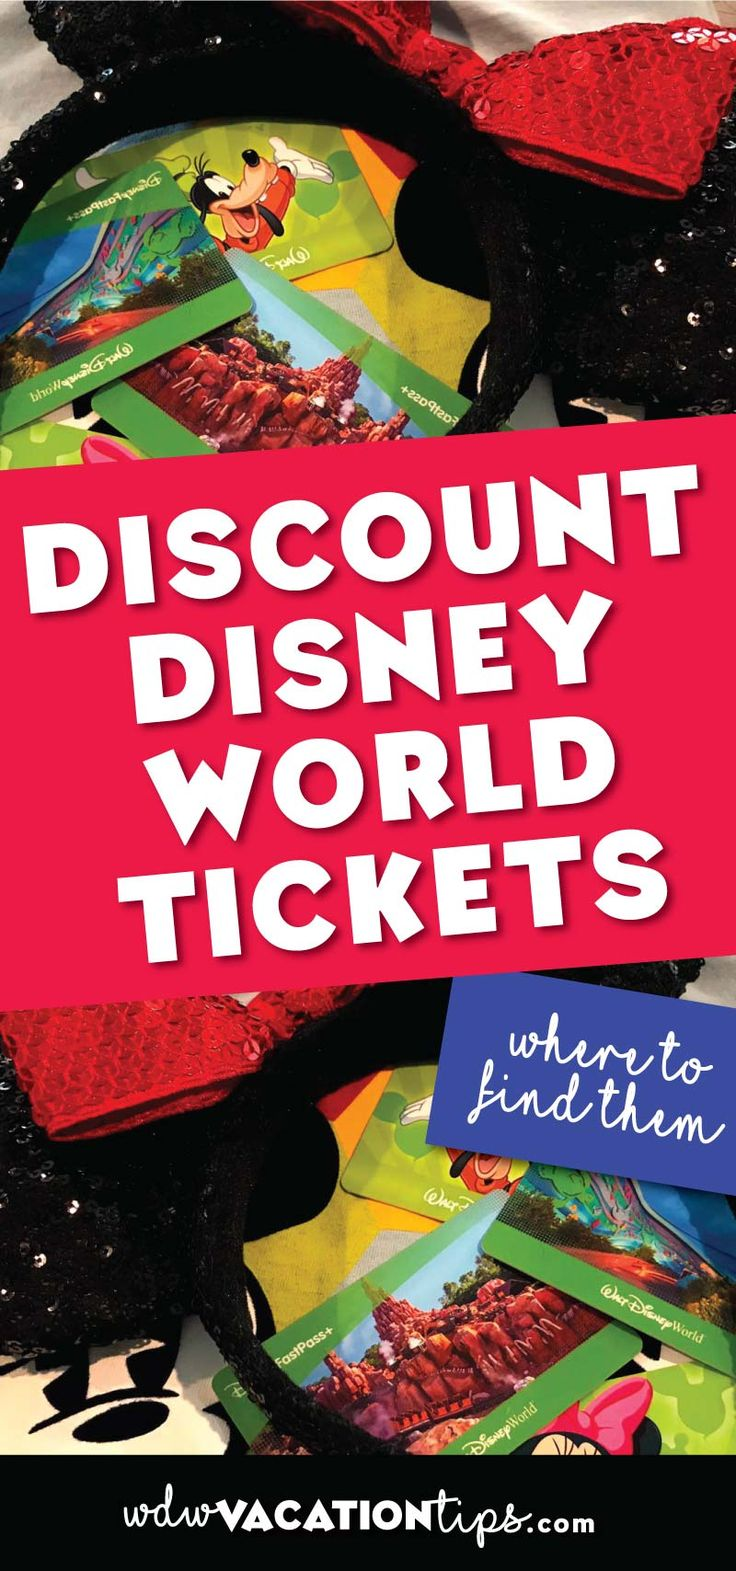 Where to find discounted Disney World tickets. Also important information on how to spot Disney ticket scams!!